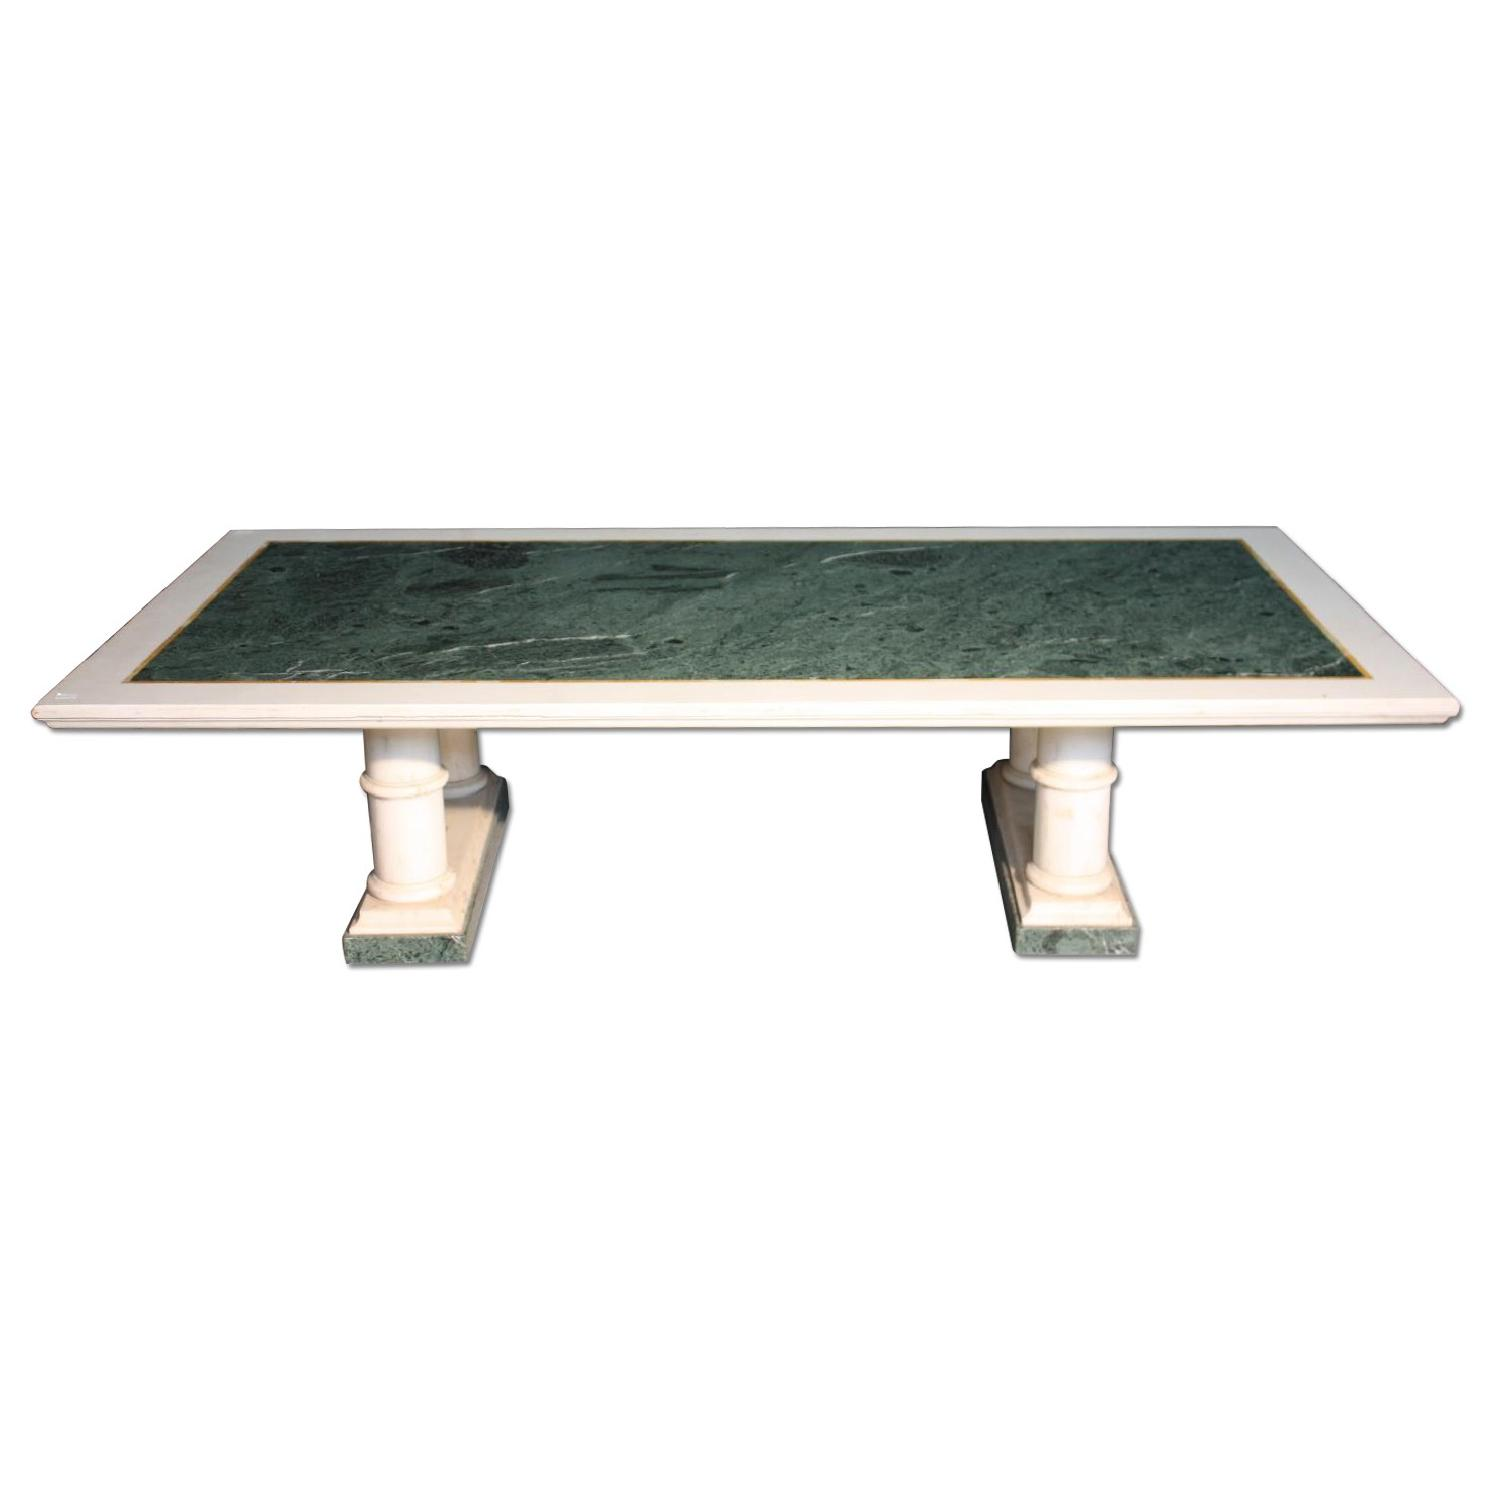 20th Century French Marble Center Table